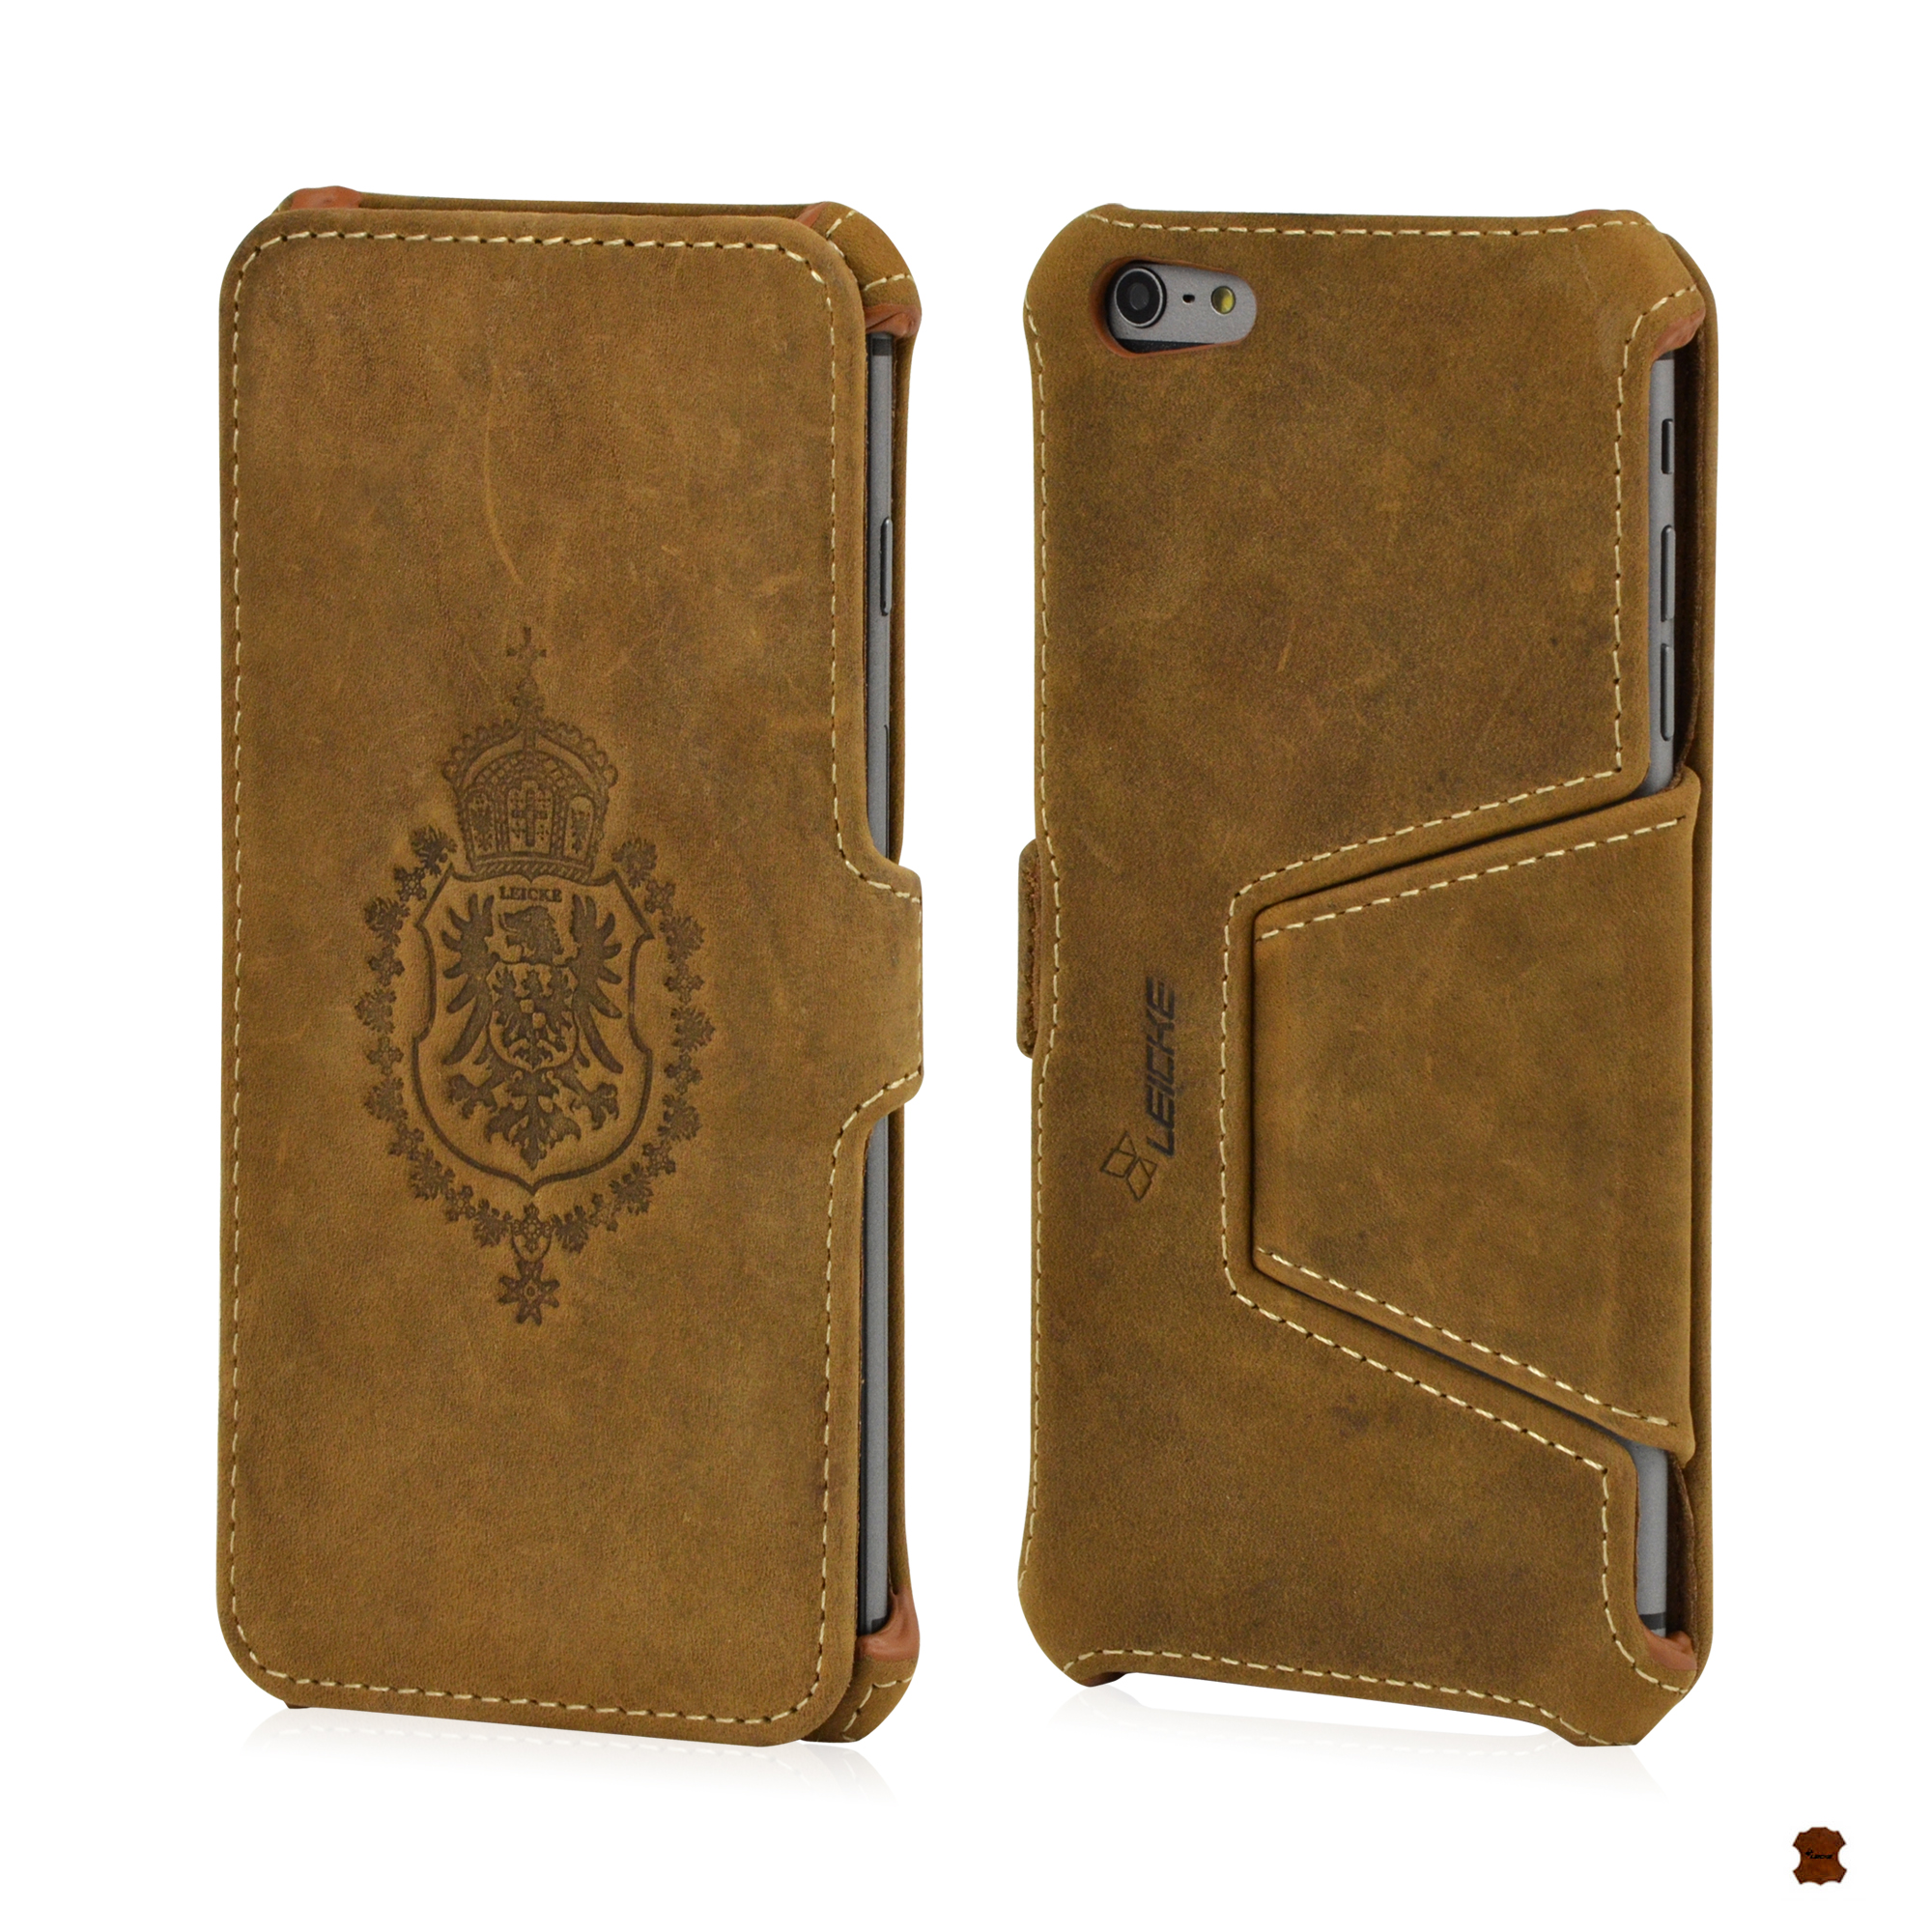 custodia wallet iphone 6s